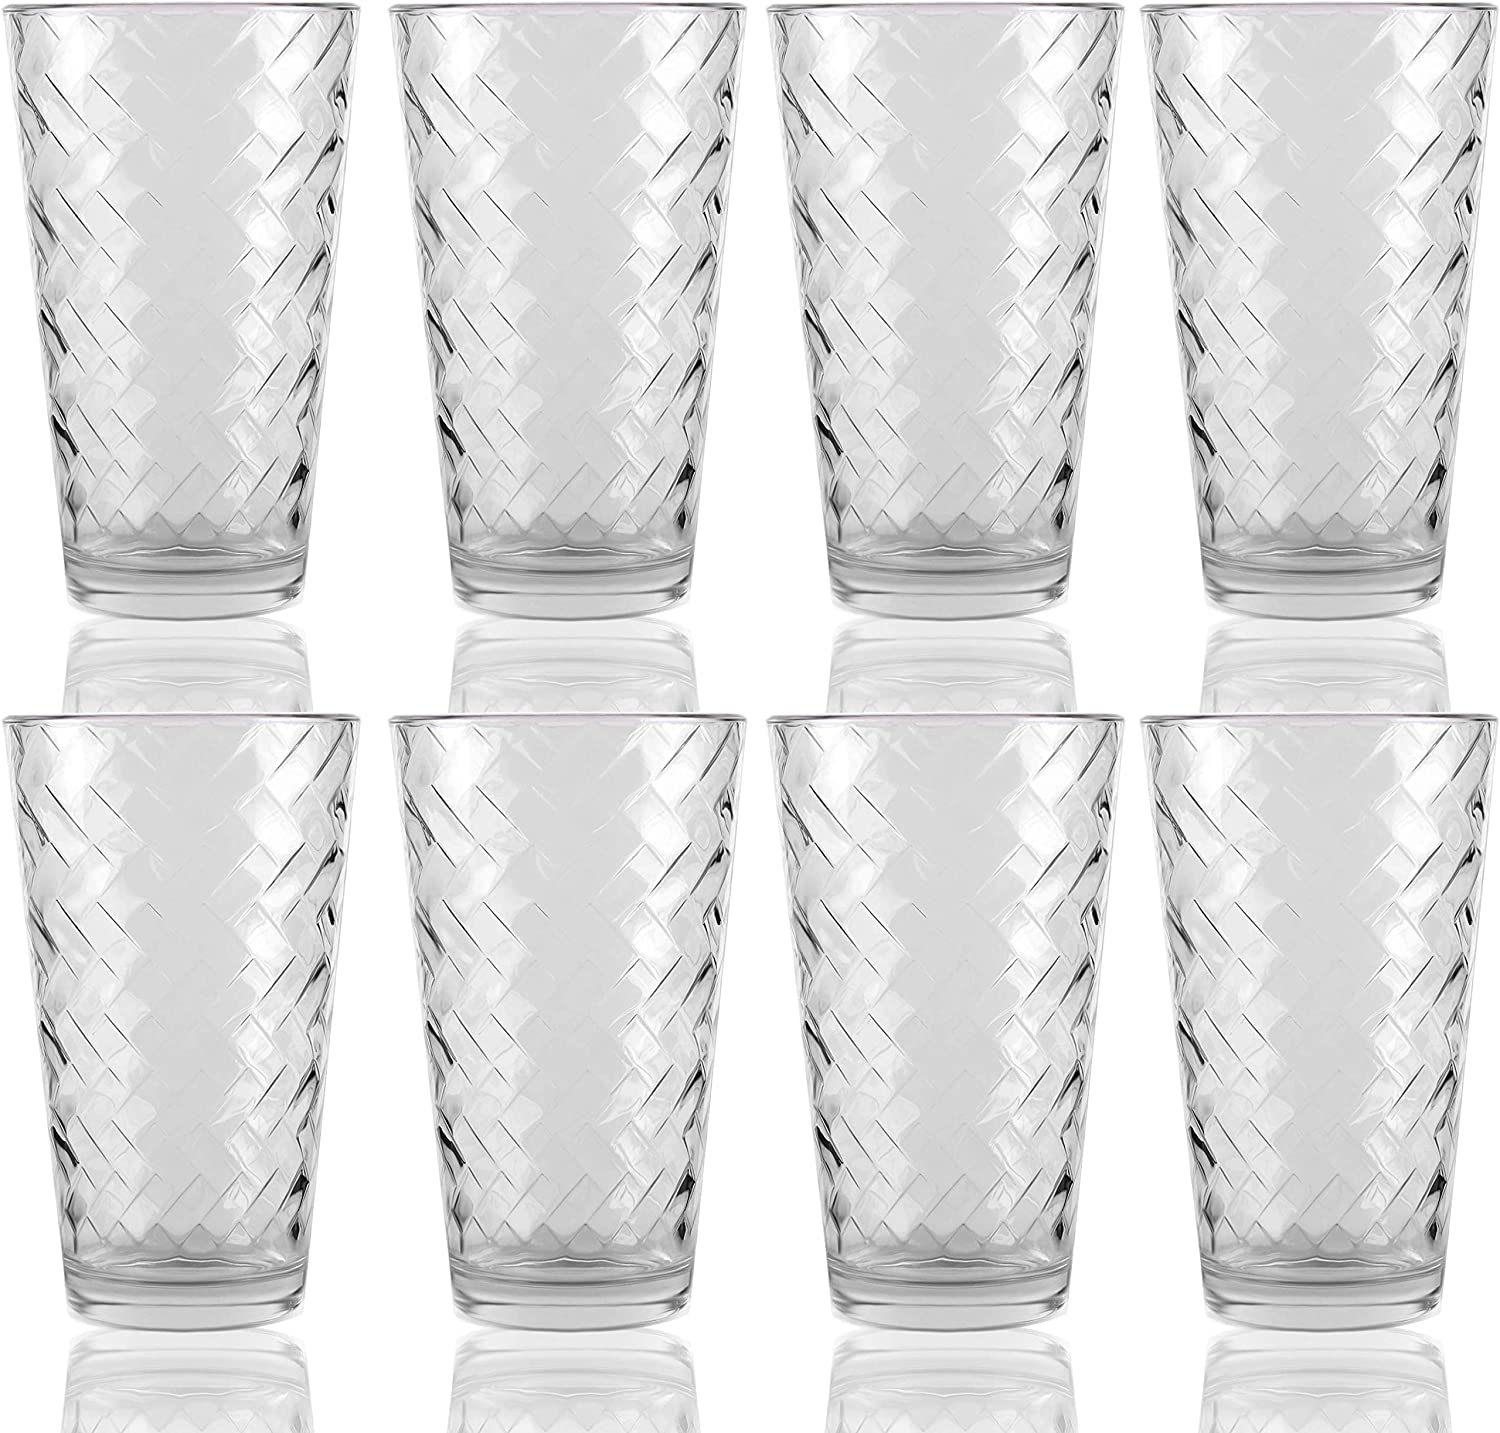 Circleware Chevron Set of 8 Tumbler Cooler Beverage Glasses Heavy Base Drinking Highball, Kitchen Cups for Water, Juice, Milk, Beer, Ice Tea, Farmhouse Decor & Gifts, 15.7 oz